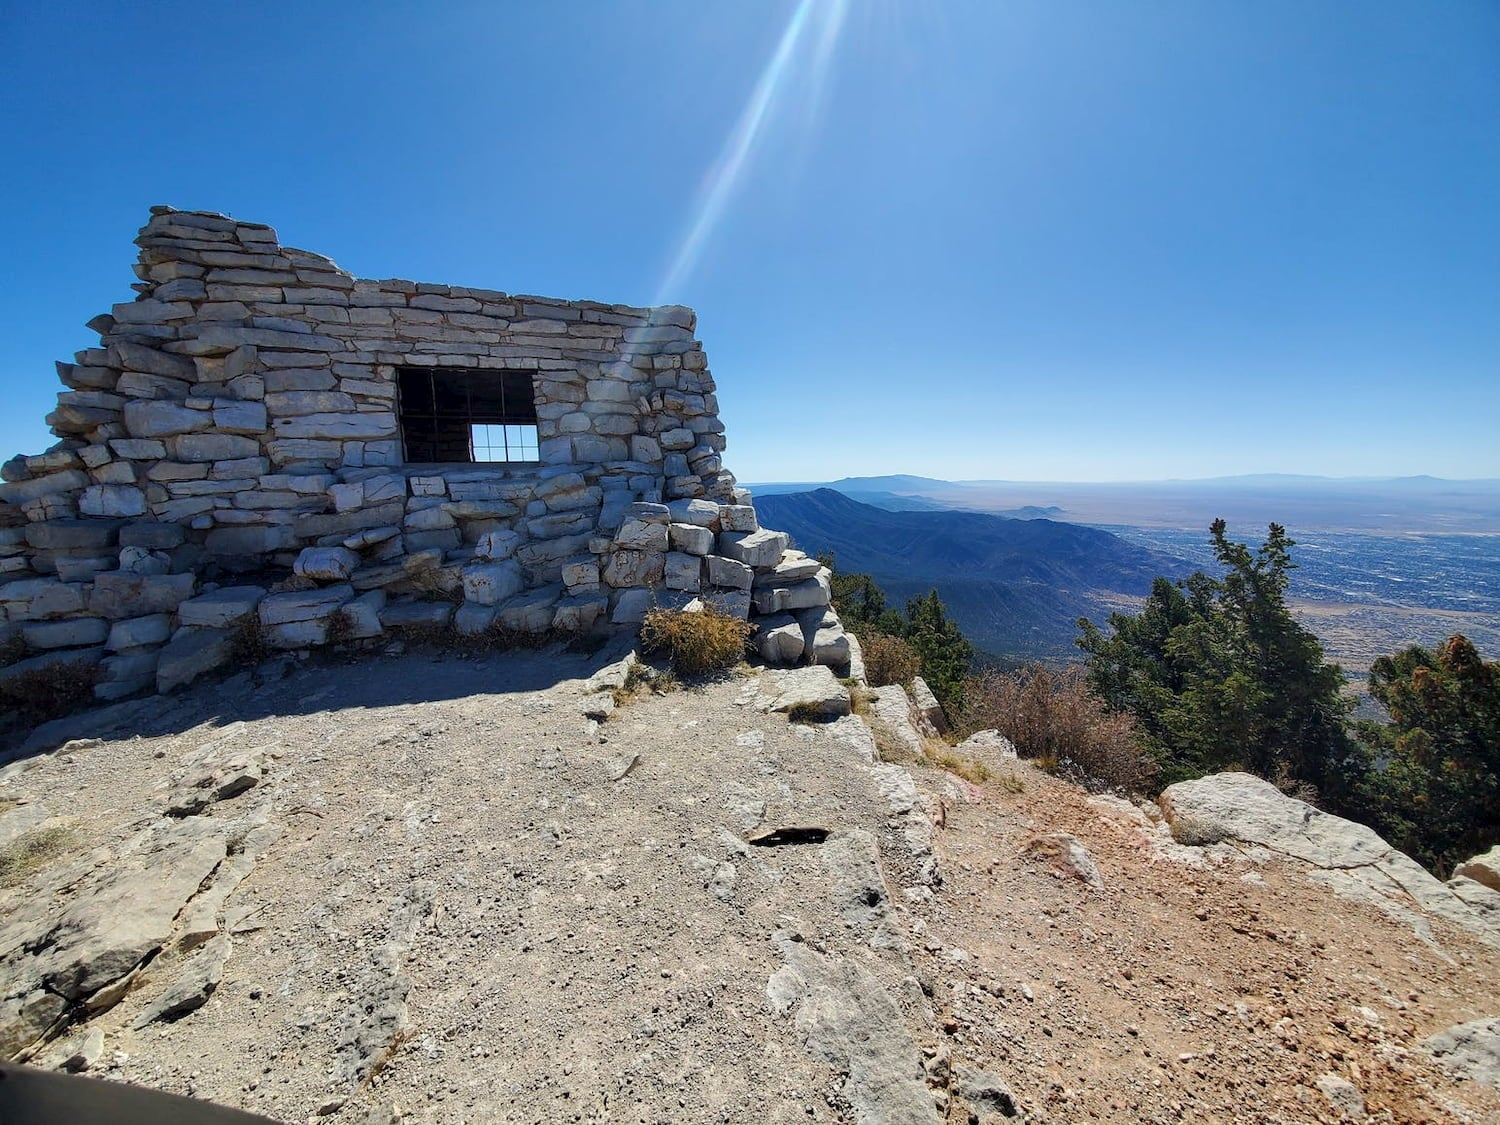 stone building on a hill and scenic overlook